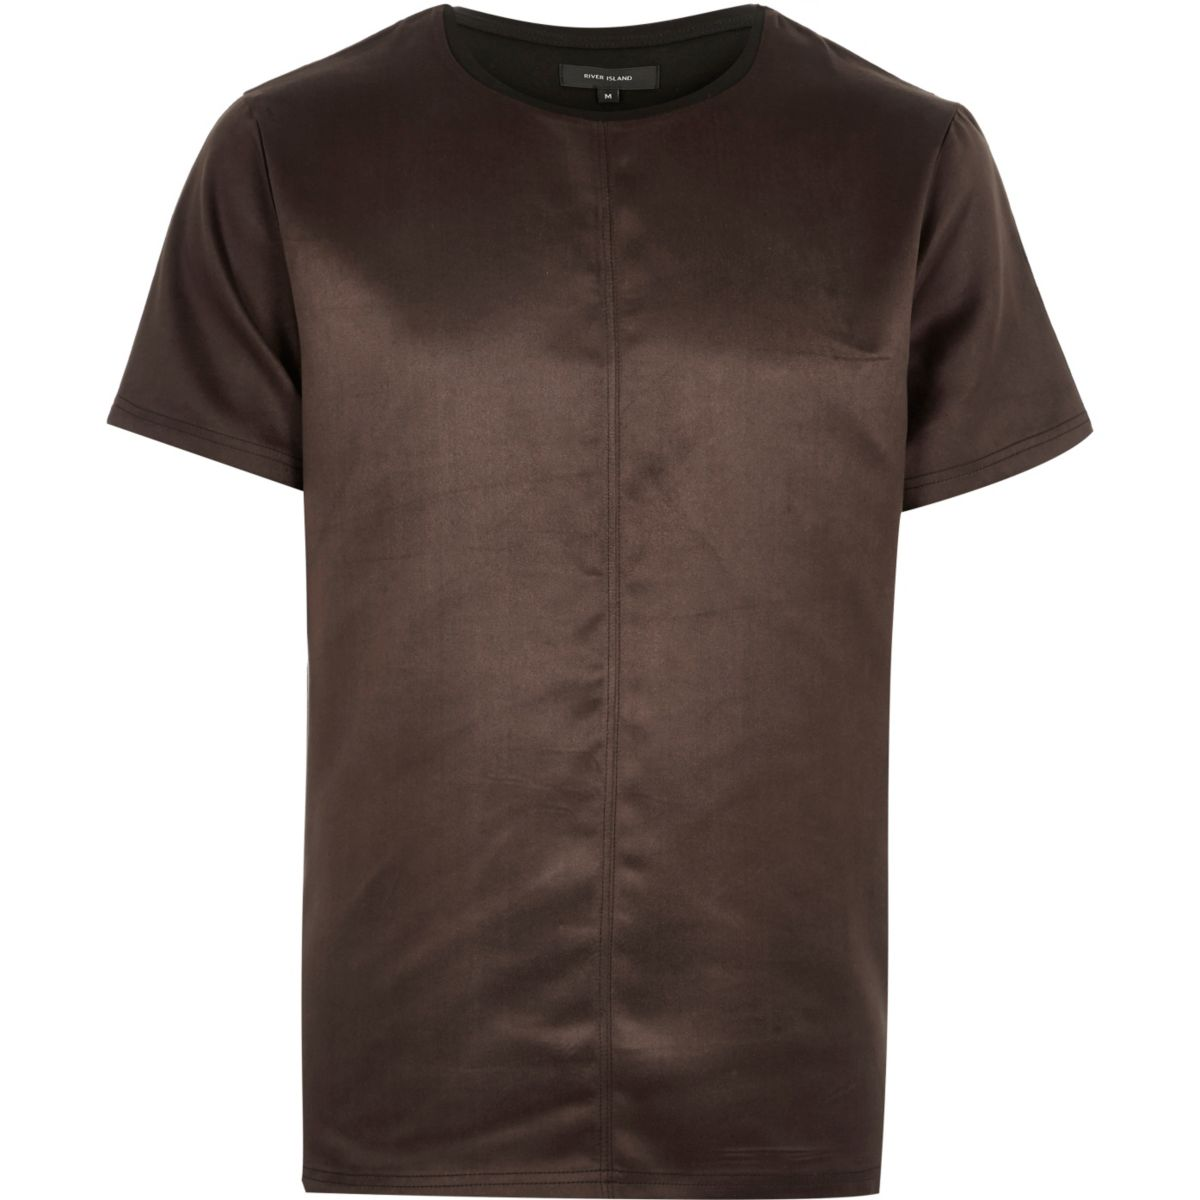 T-shirt marron imitation daim